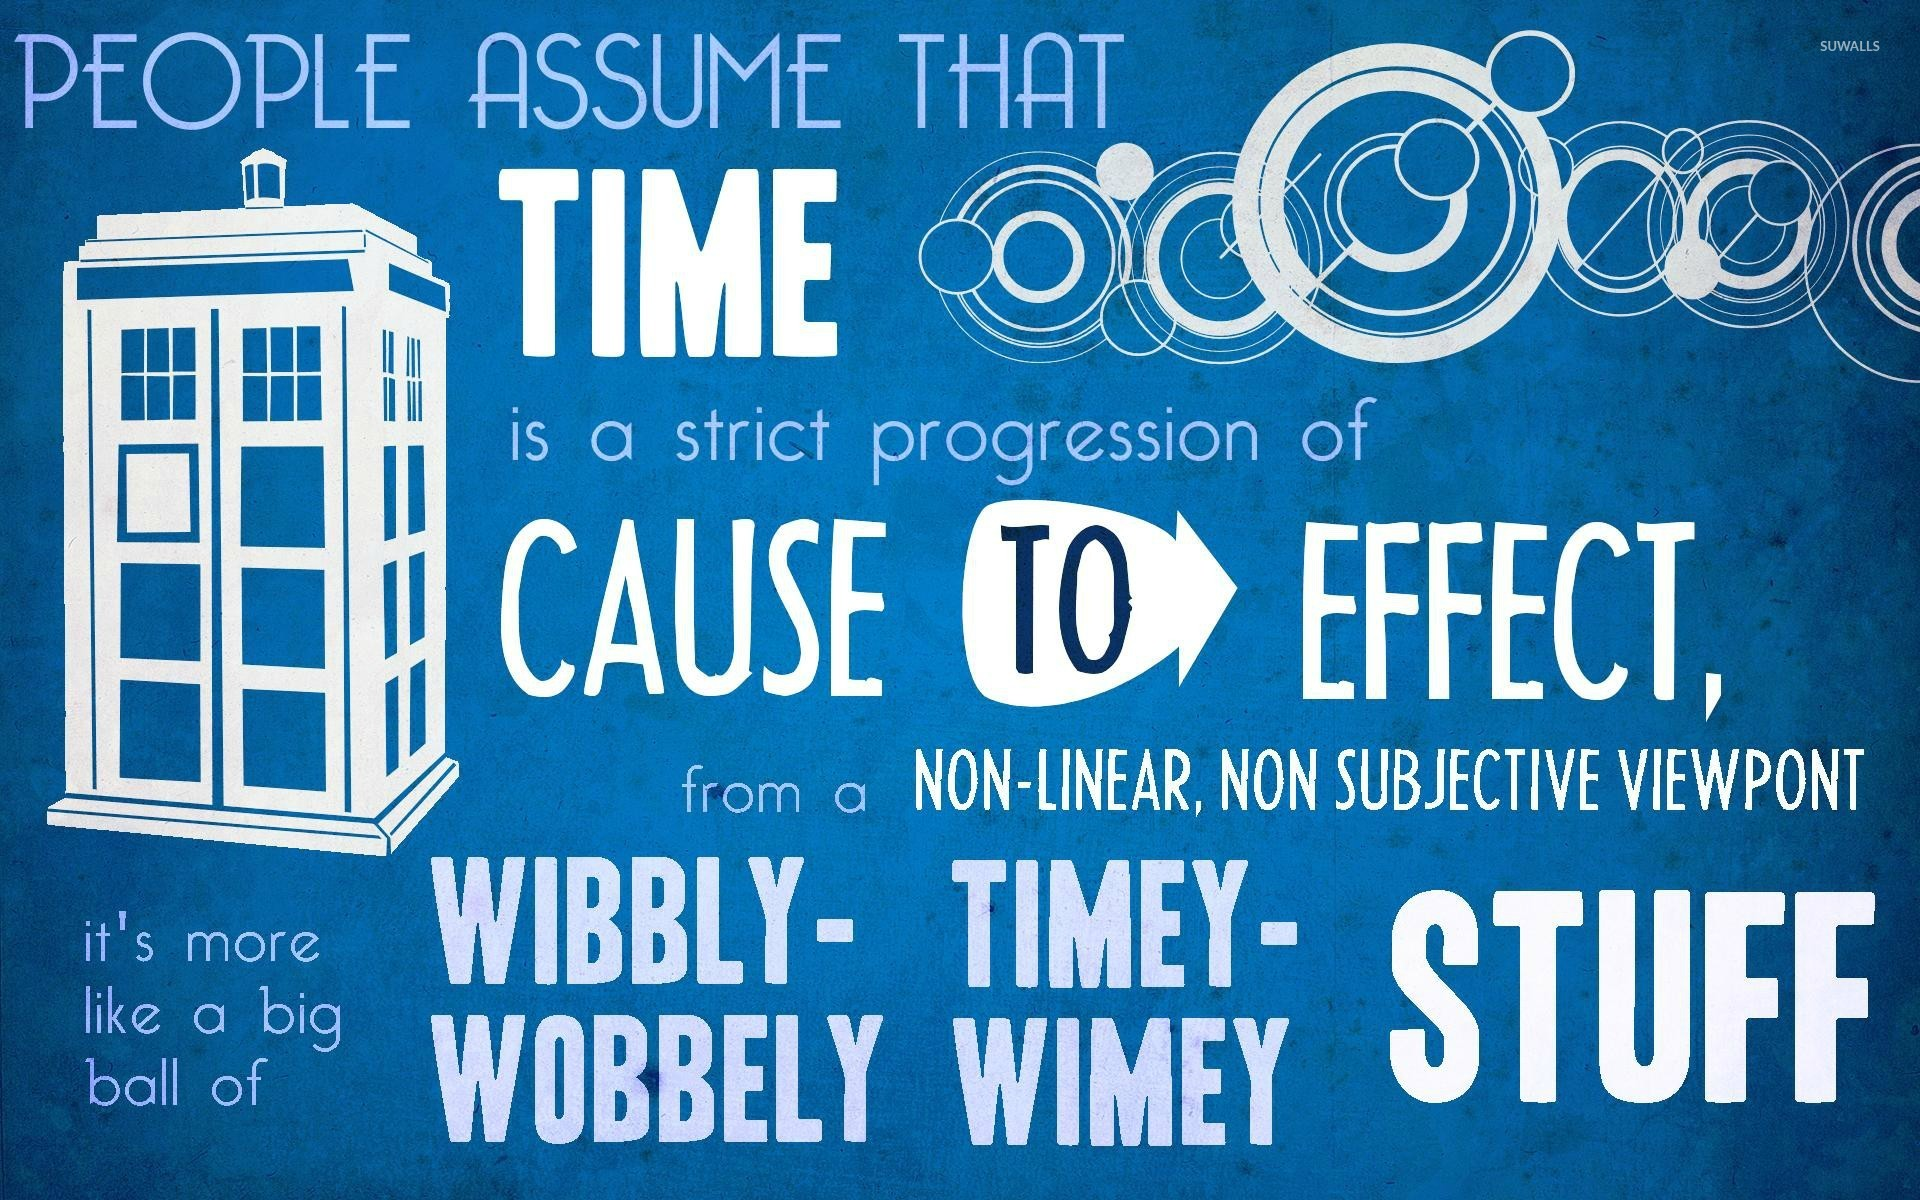 Time and Doctor Who wallpaper Typography wallpapers 27580